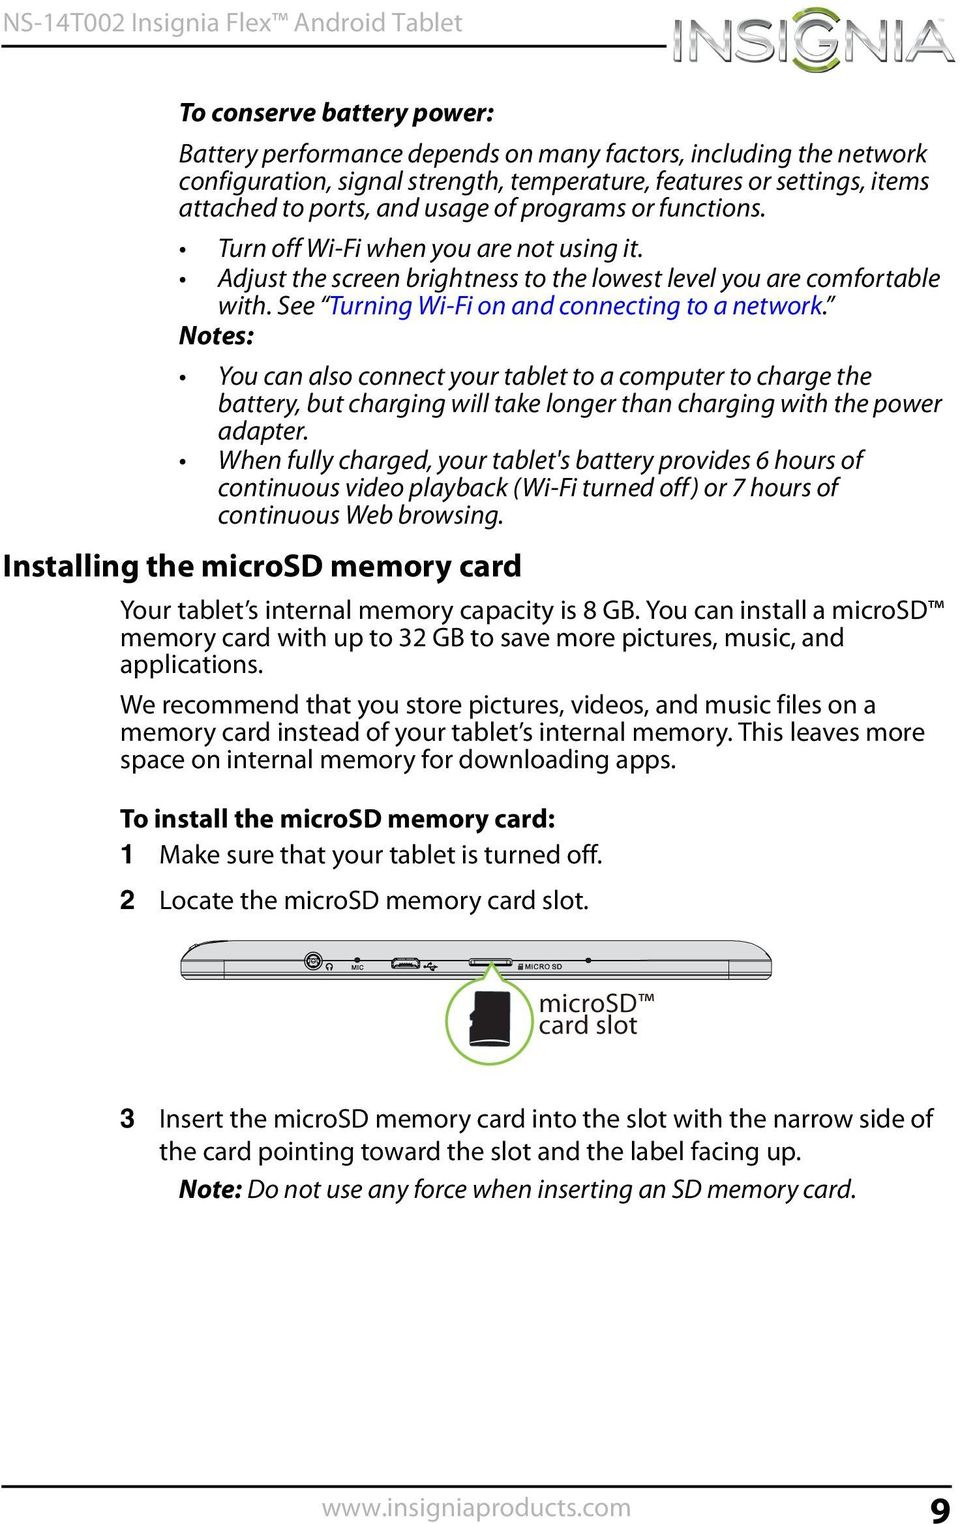 Notes: You can also connect your tablet to a computer to charge the battery, but charging will take longer than charging with the power adapter.